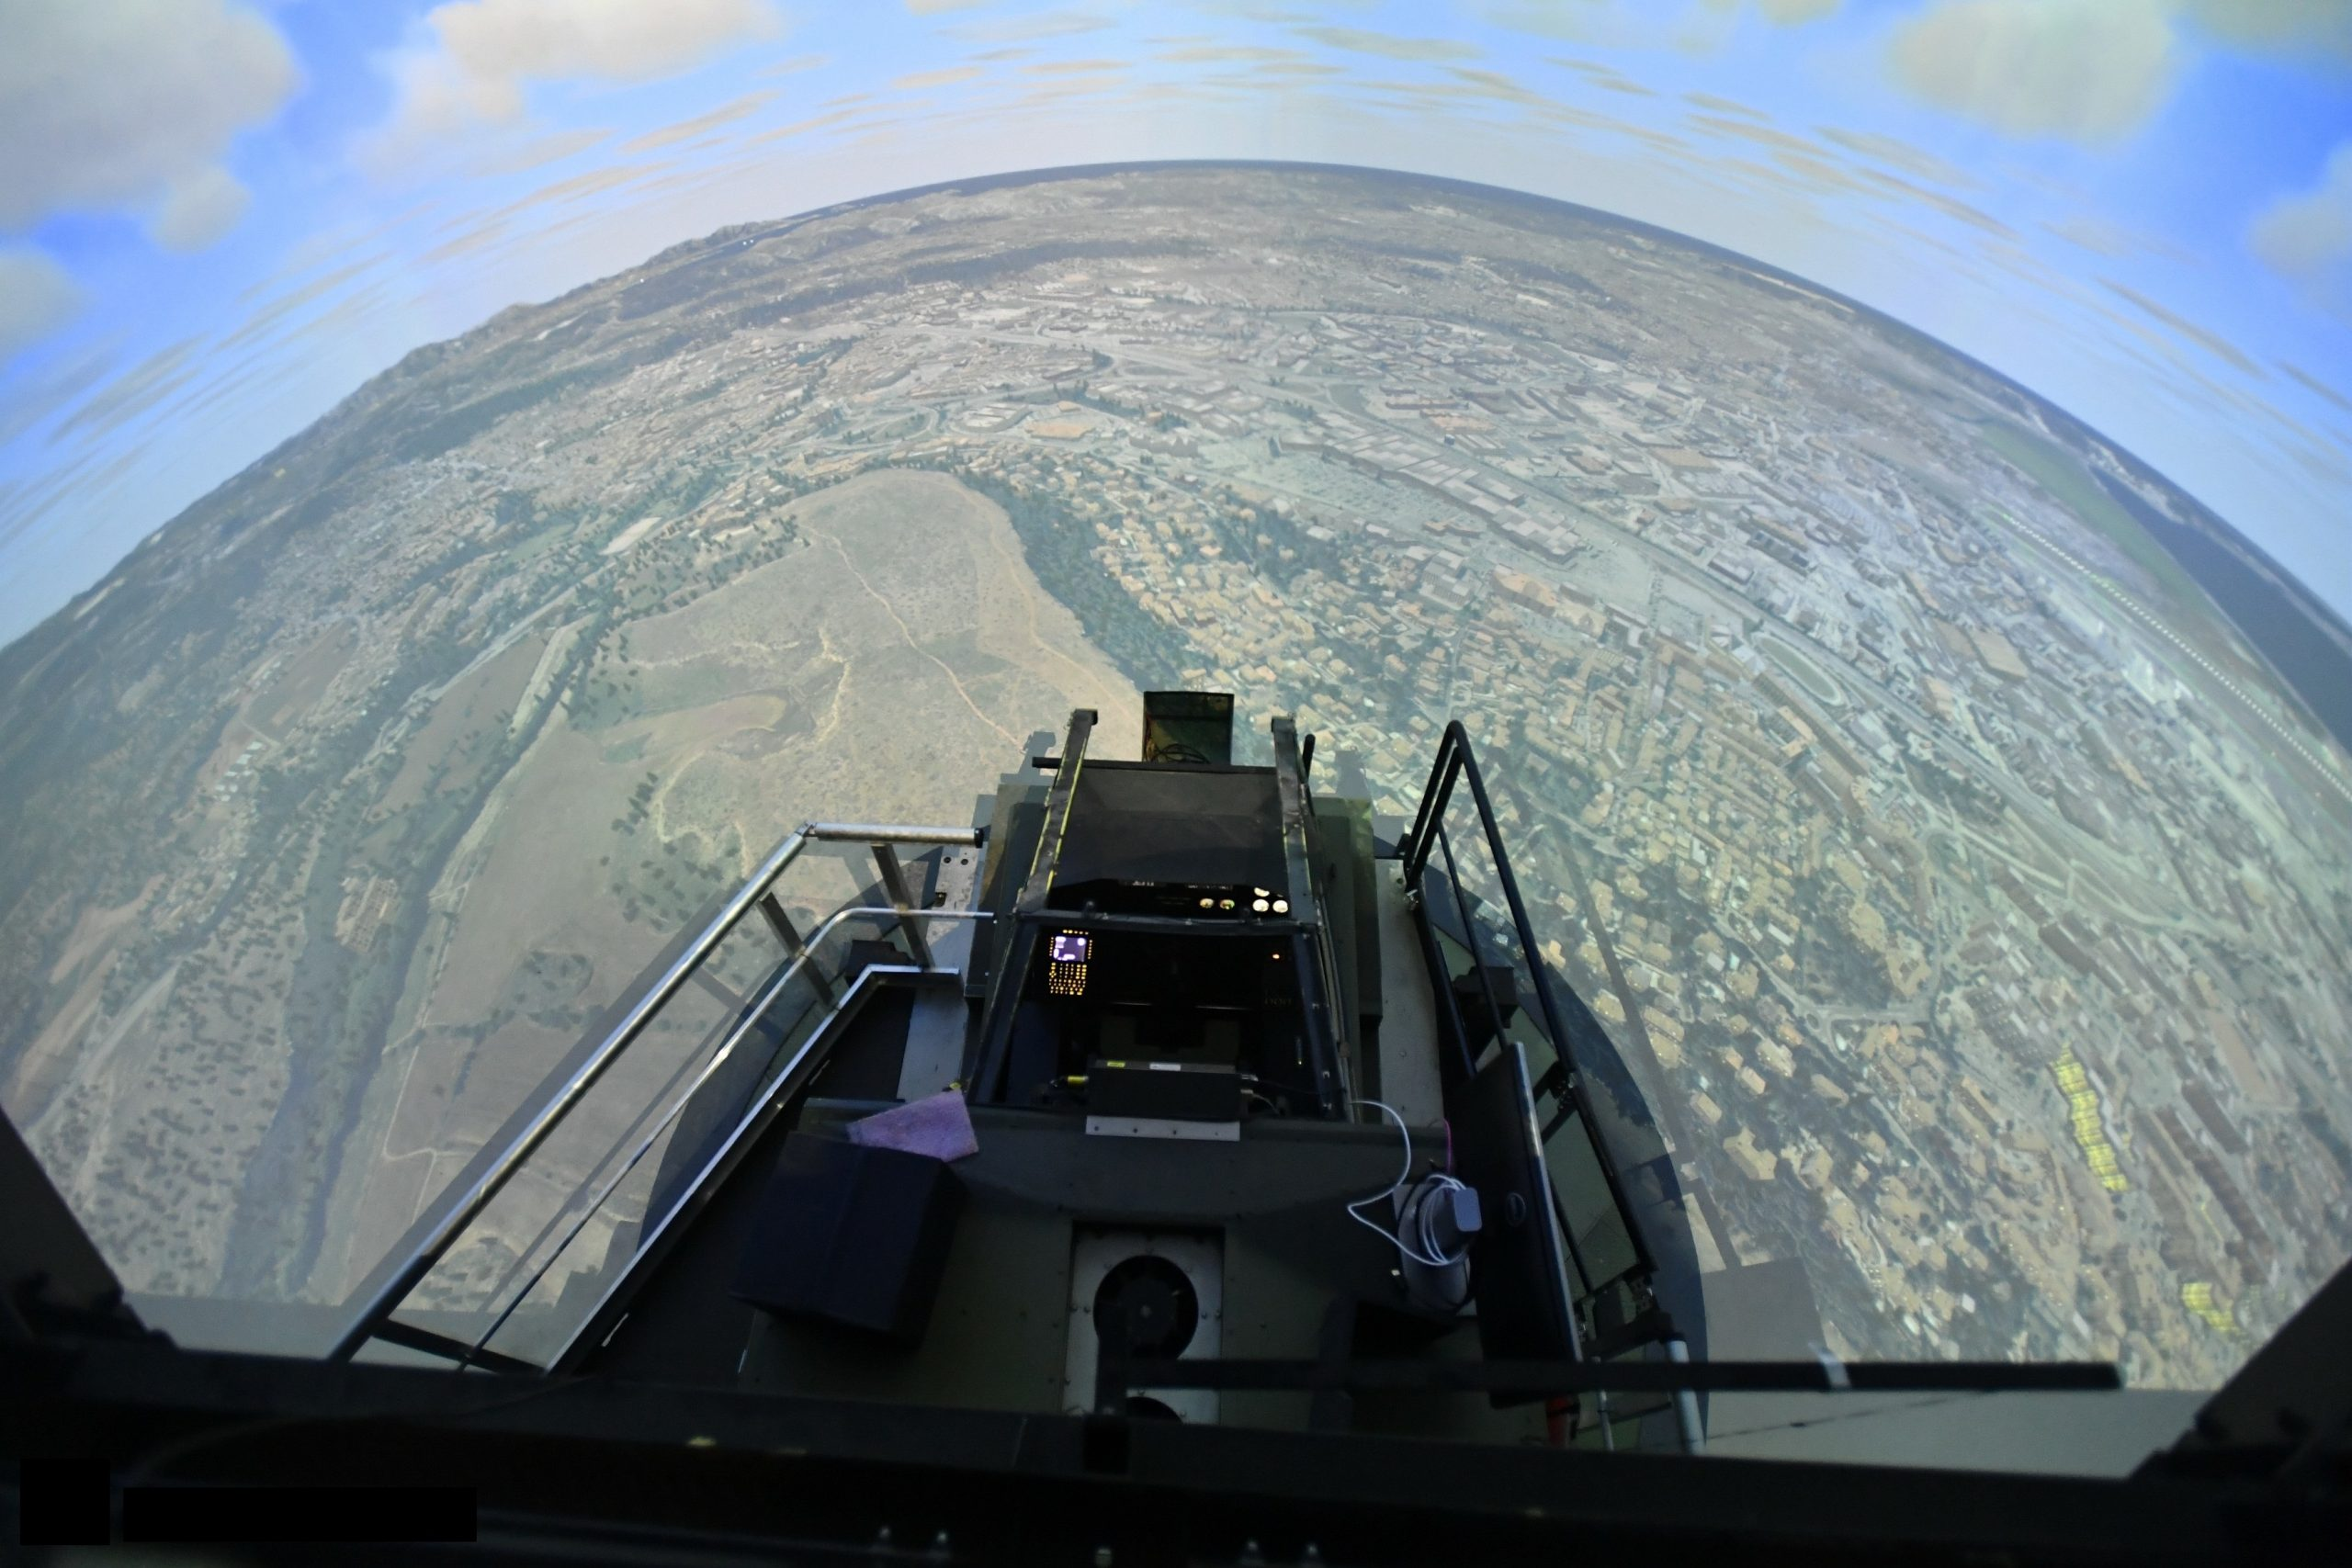 ST Engineering Antycip Equips Tiger Attack Helicopter Simulators